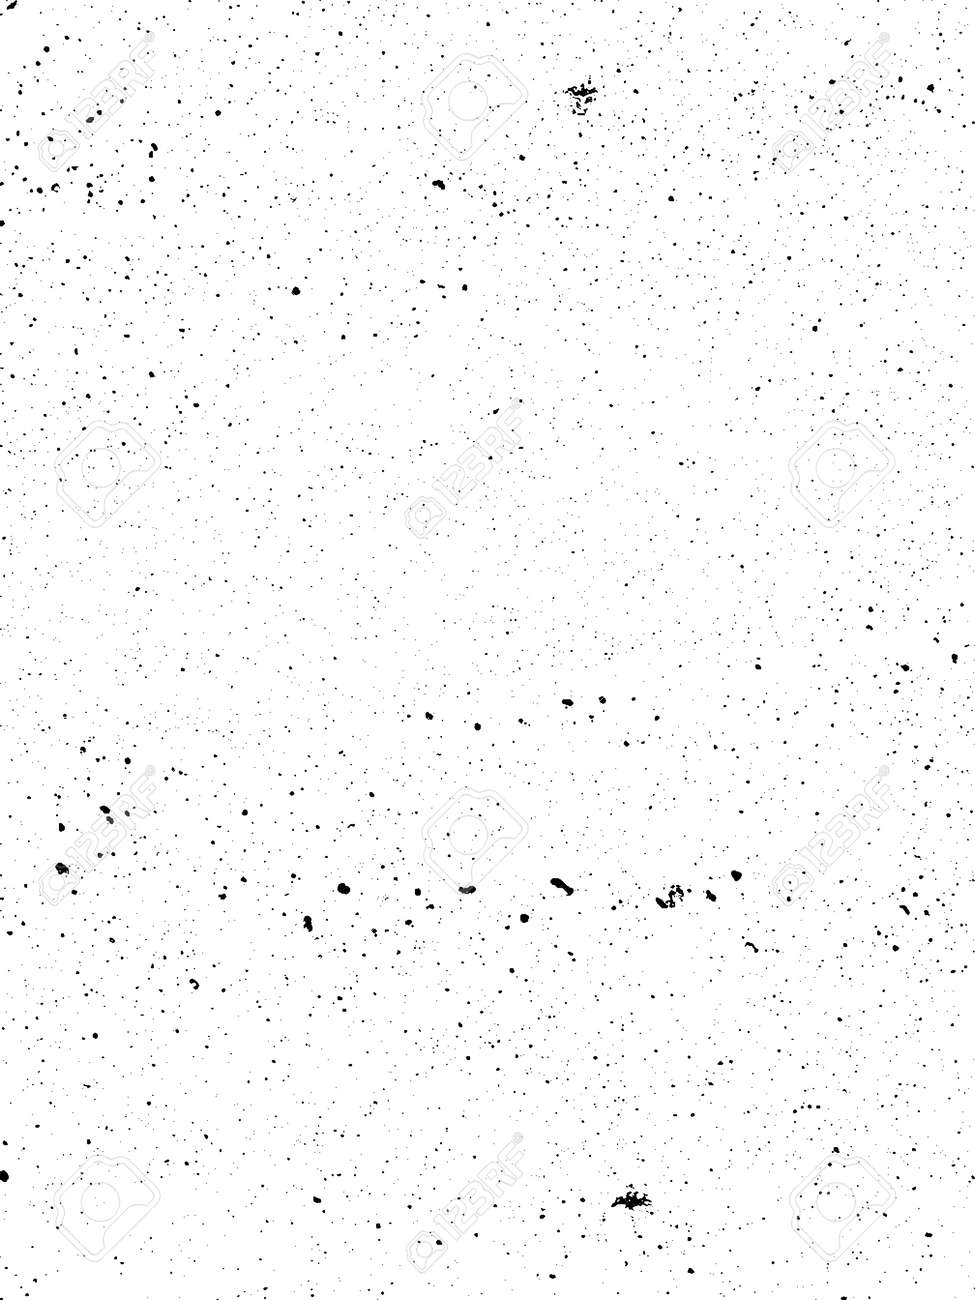 Cement texture. Concrete overlay black and white texture. - 169291838